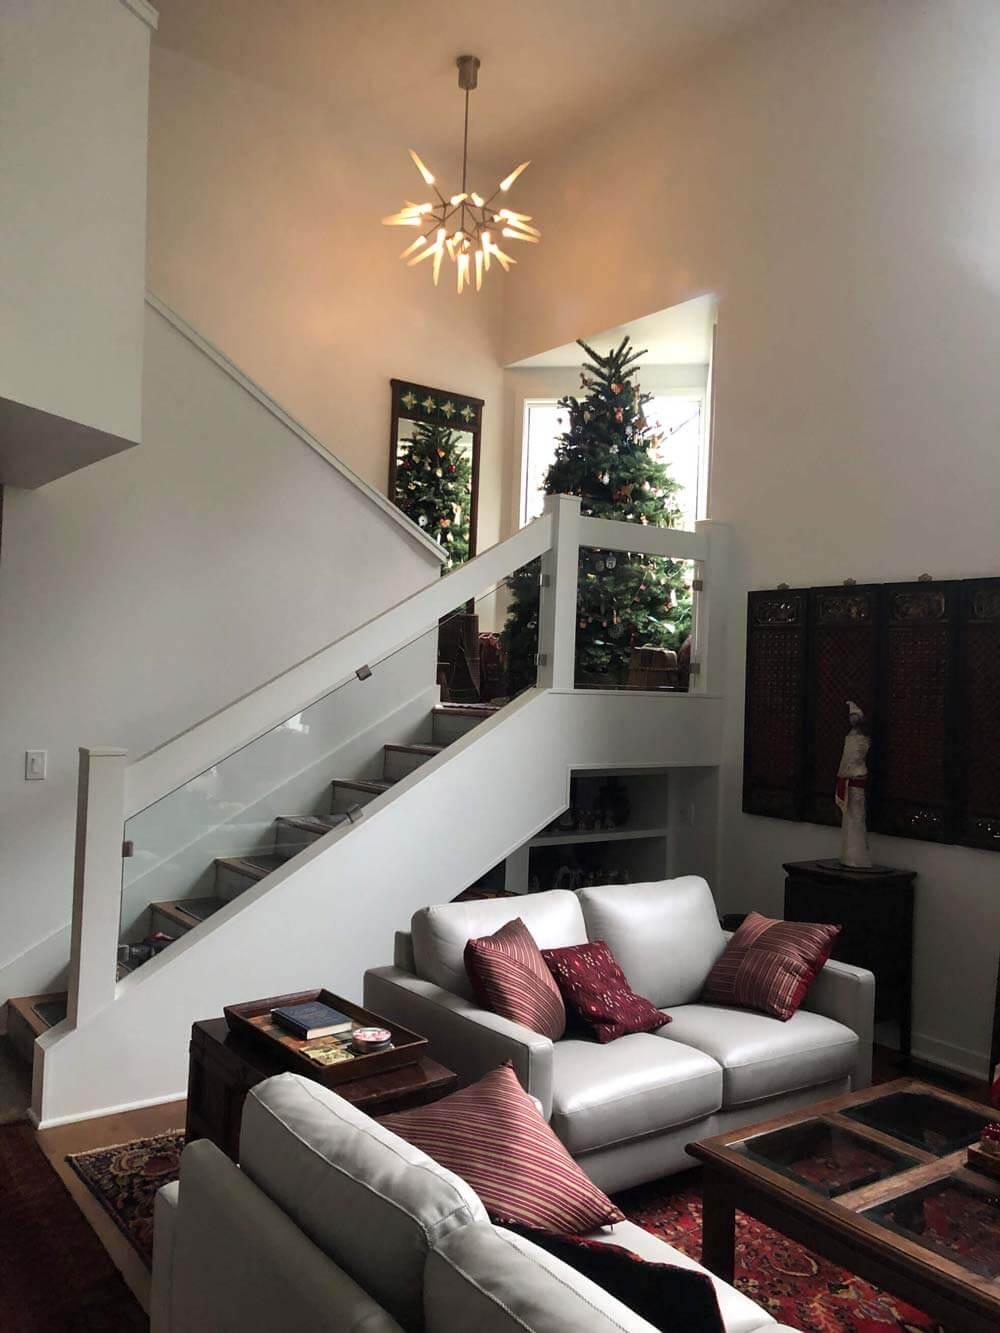 Ridgefield Home Remodeling with Stairwell Chandelier